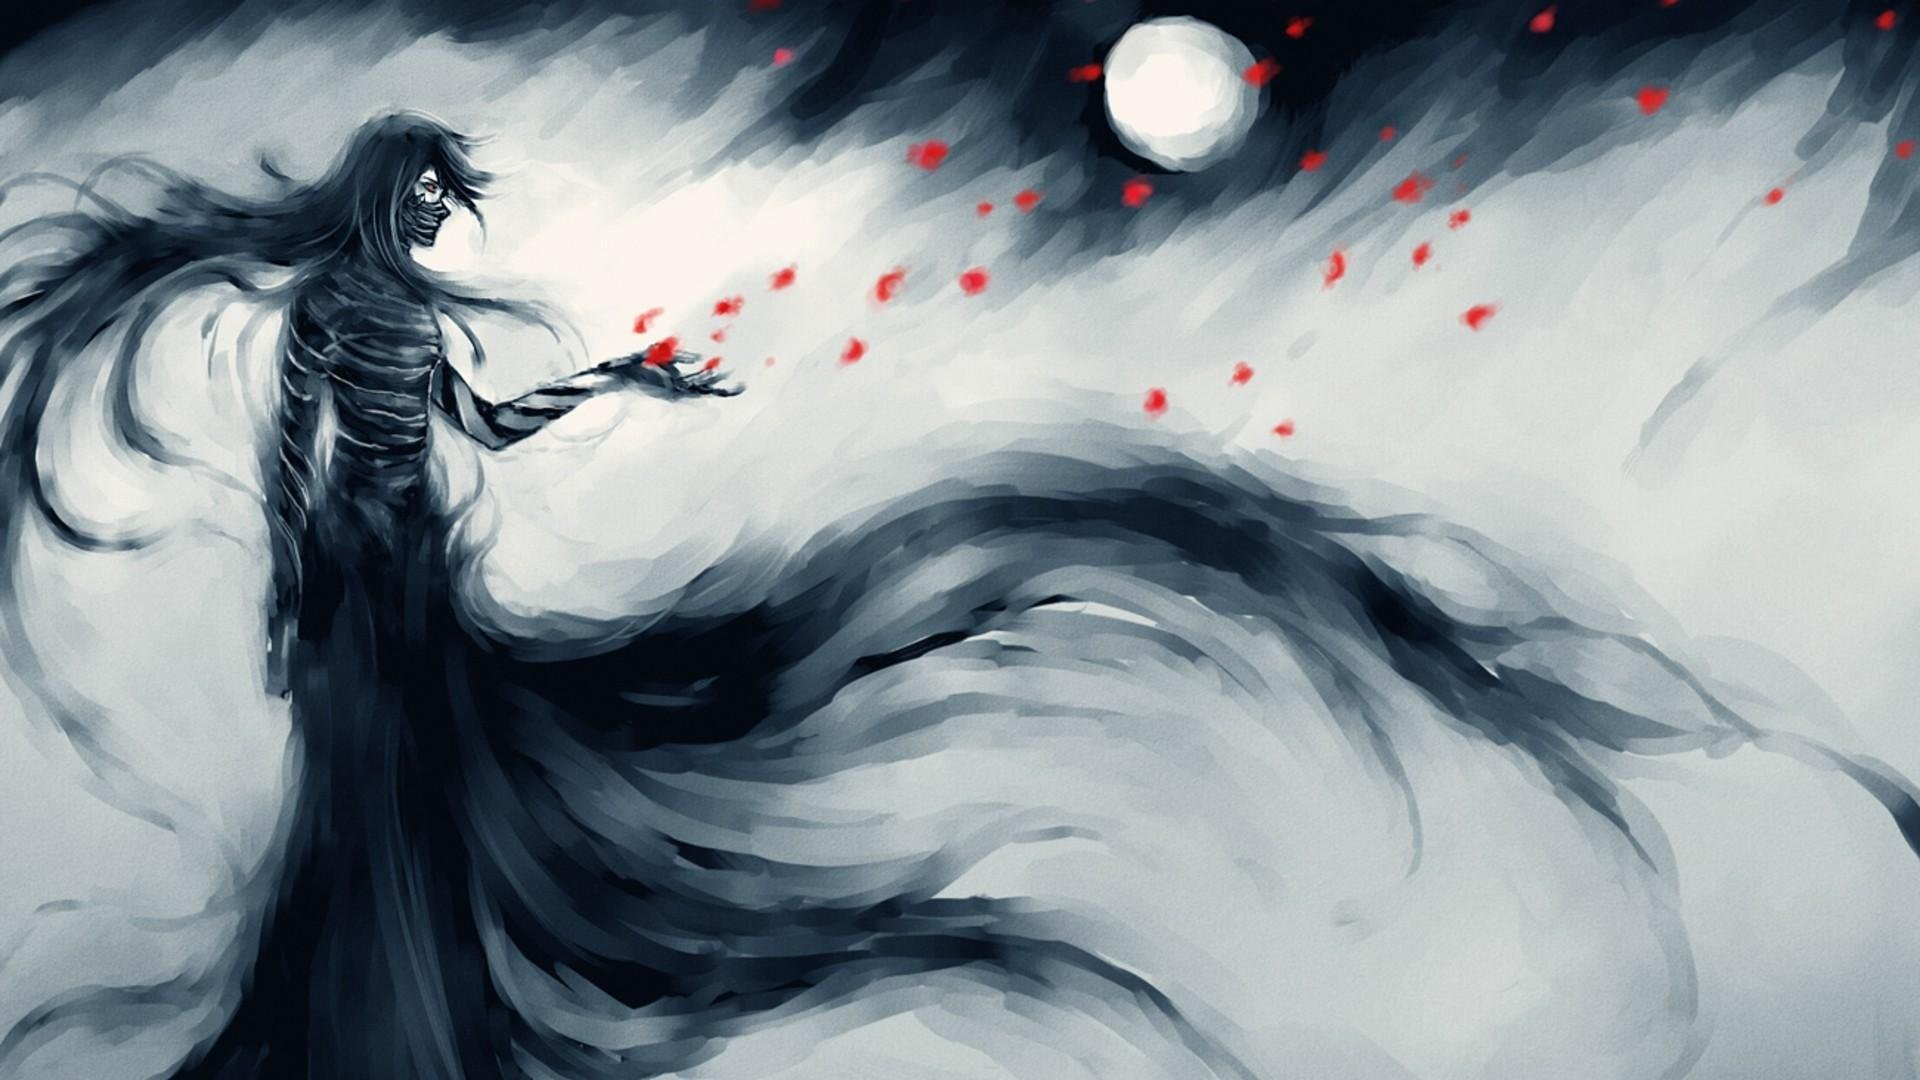 epic anime wallpaper ·① download free stunning backgrounds for